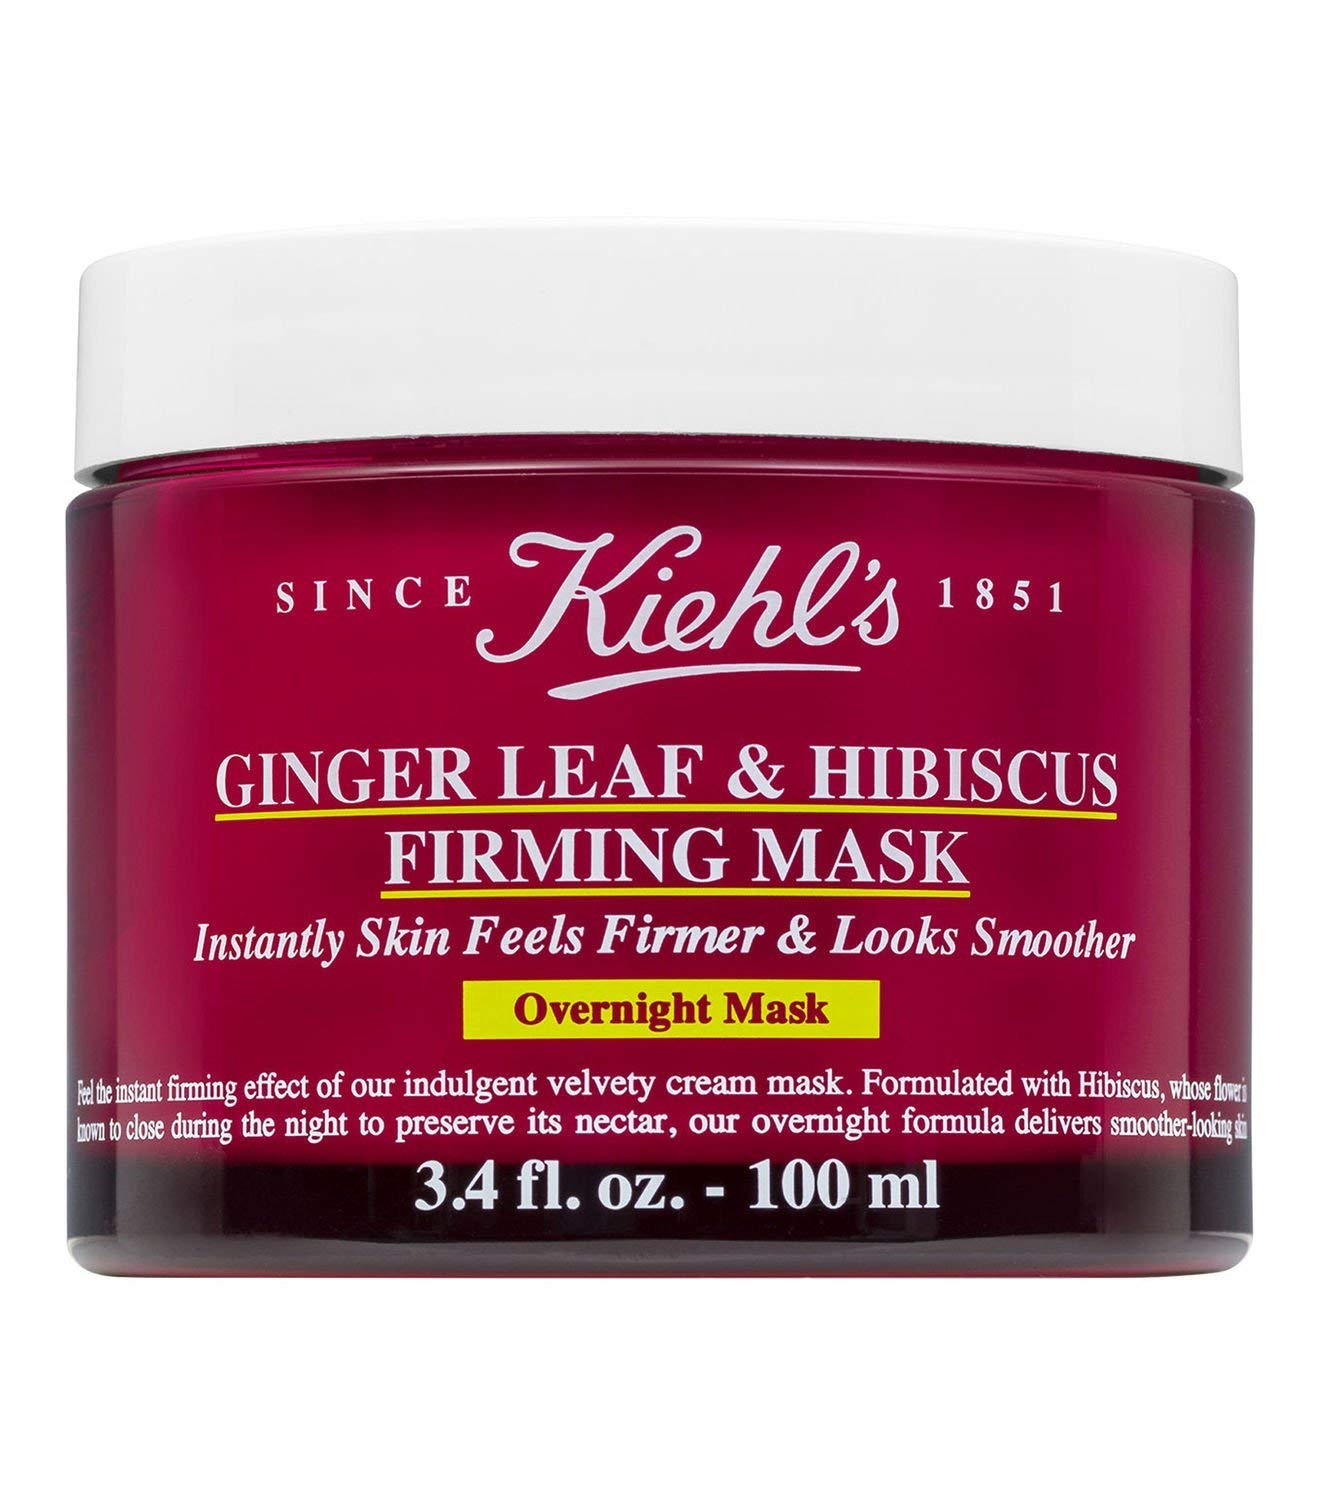 Kiehl's Ginger Leaf & Hibiscus Firming Overnight Face Mask 3.4oz (100ml)の画像